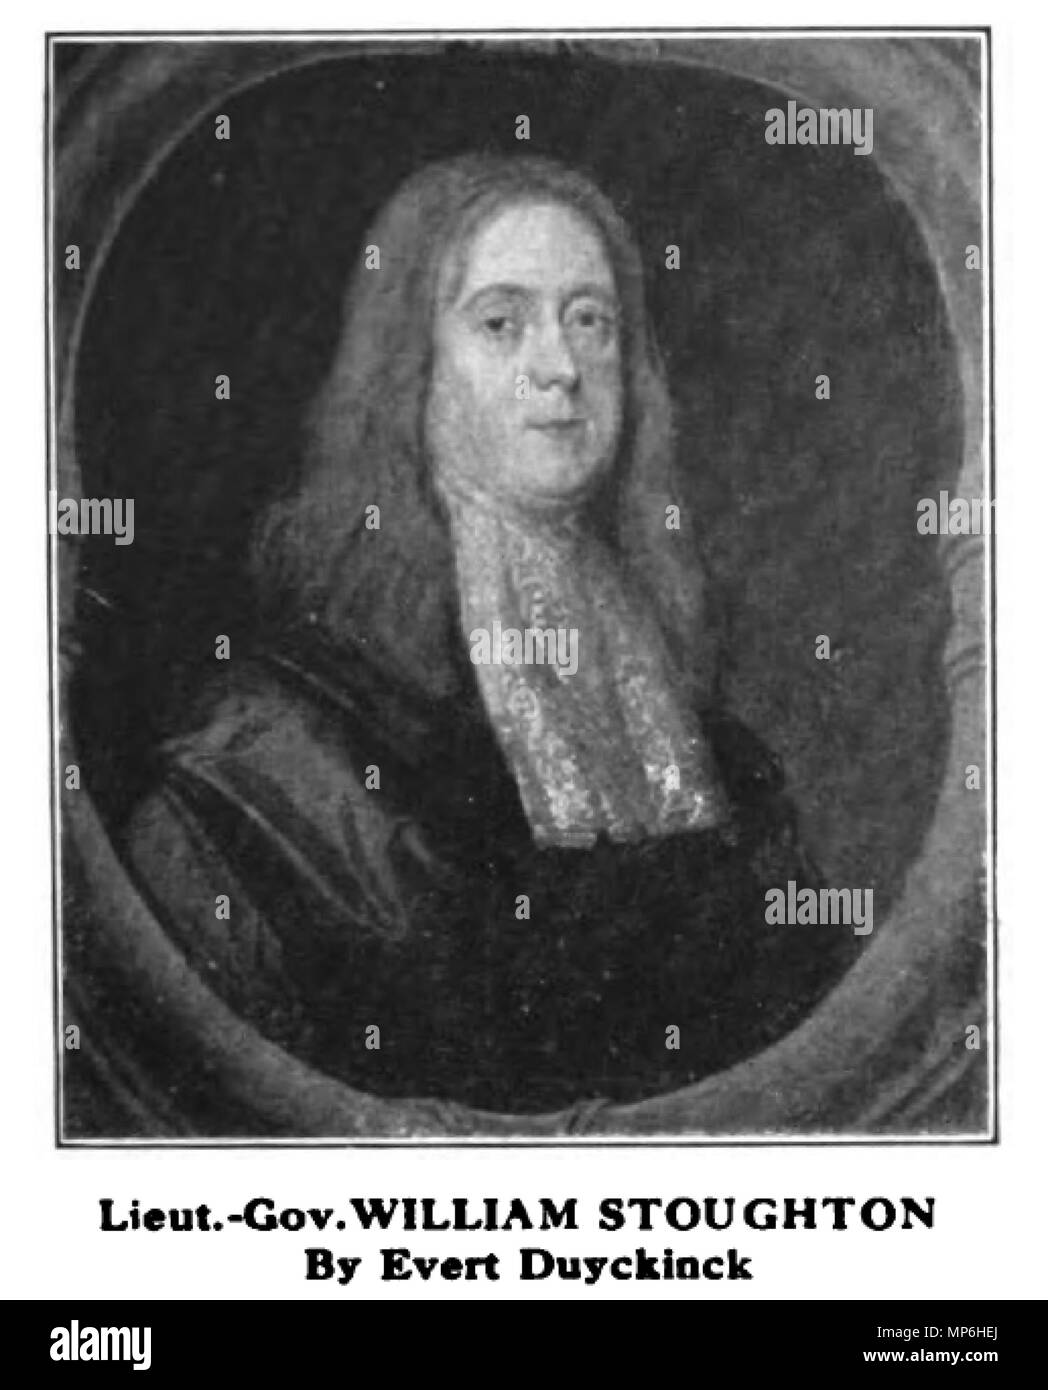 . English: Oil Portrait of William Stoughton, Lieut. Governor of Massachusetts, circa 1685, painted by Evert I. Duychinck (1632 - 1703), 75.5cm x 63.2cm (29 3/4' x 24 7/8'), acquired by the Boston Athenaeum in 1920. (For details, see: http://collections.si.edu/search/tag/tagDoc.htm?recordID=npg B.A.UR.102&hlterm=record ID%%%%%%%%%%%%%%%%3Anpg B.A.UR.102) This black-and-white reproduction was published in 'Old-time New England,' (The Bulletin of the Society for the Preservation of New England Antiquities), Volume XI, No. 4, Serial No. 24 (April 1921), in an advertisement by F. W. Bayley & Son,  - Stock Image